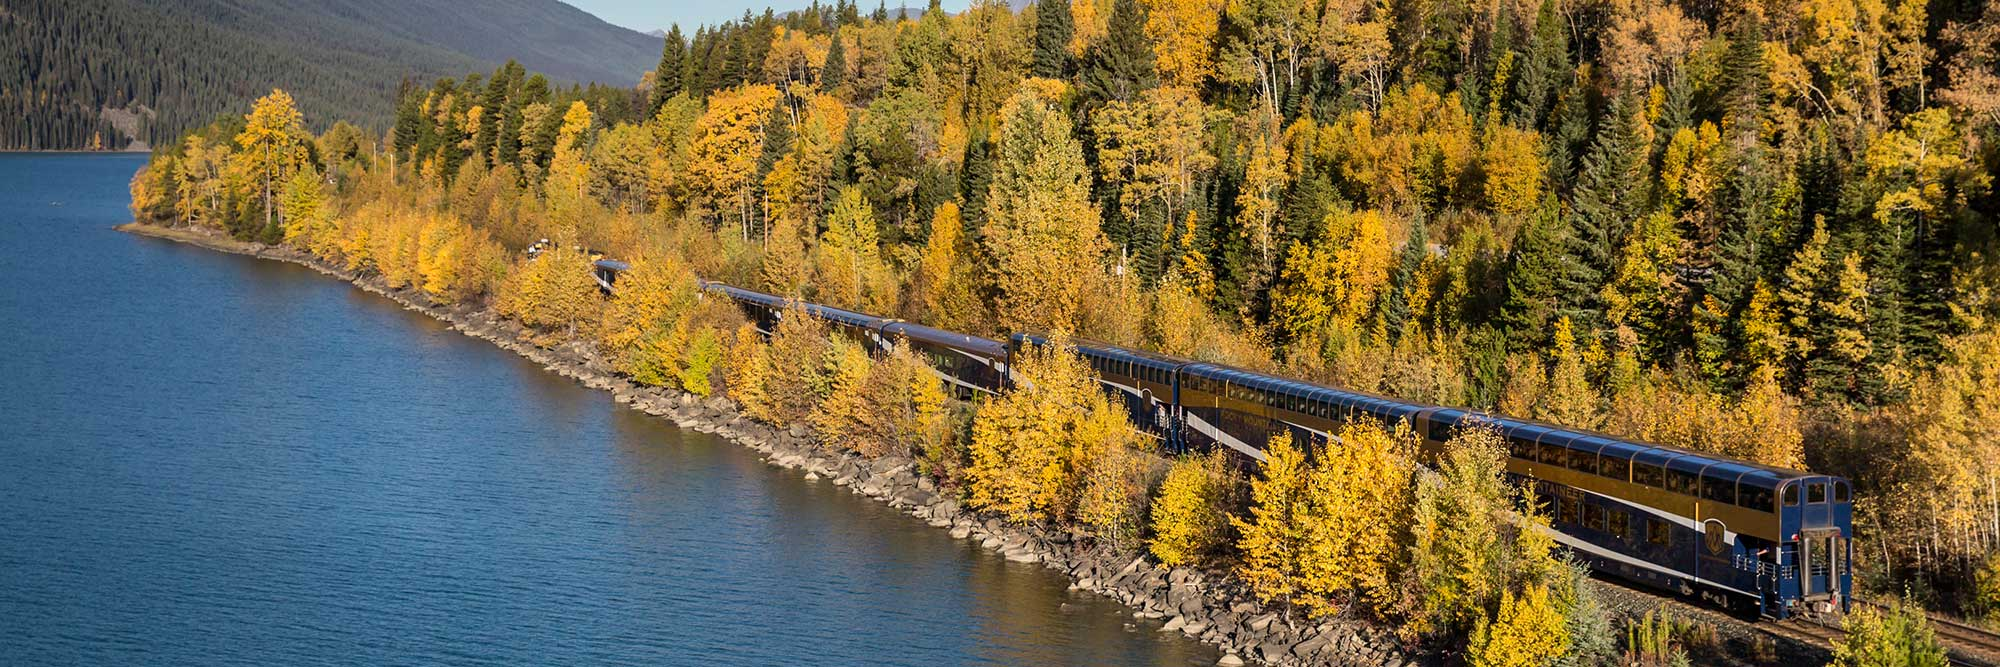 Rocky Mountaineer Train, Moose Lake, AB